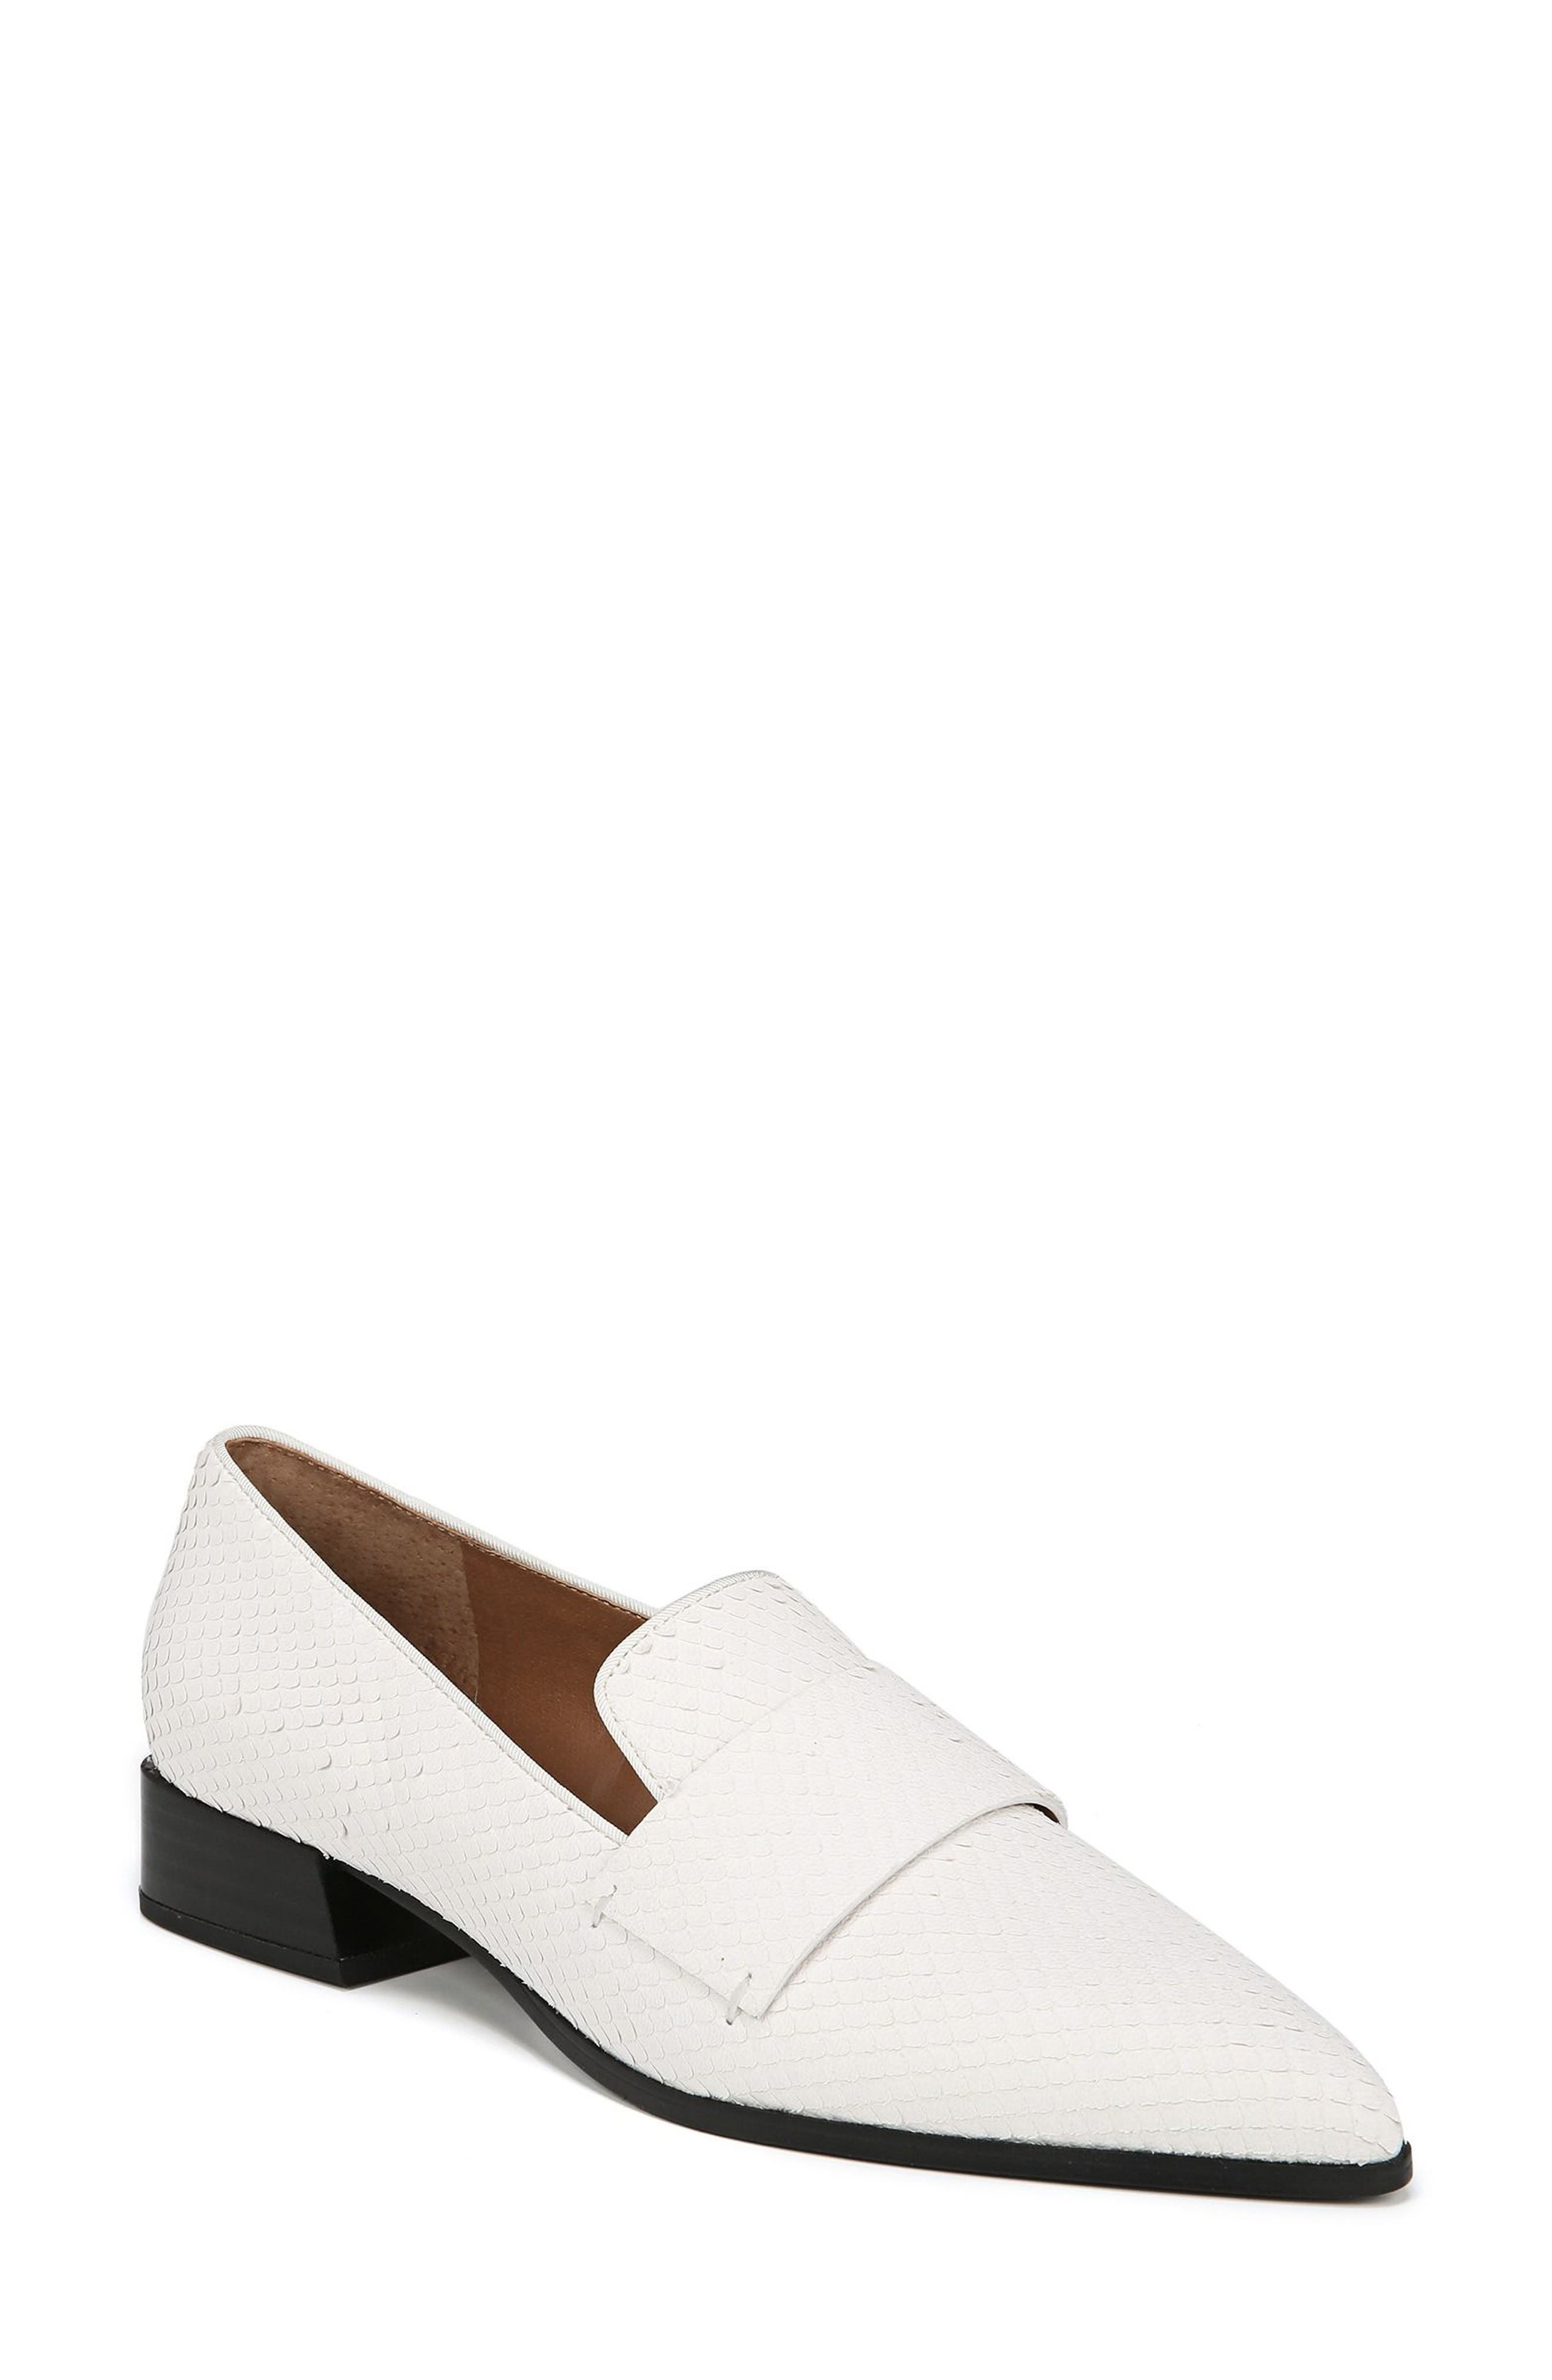 Nebby 2 Pointy Toe Loafer,                             Main thumbnail 1, color,                             WHITE LEATHER